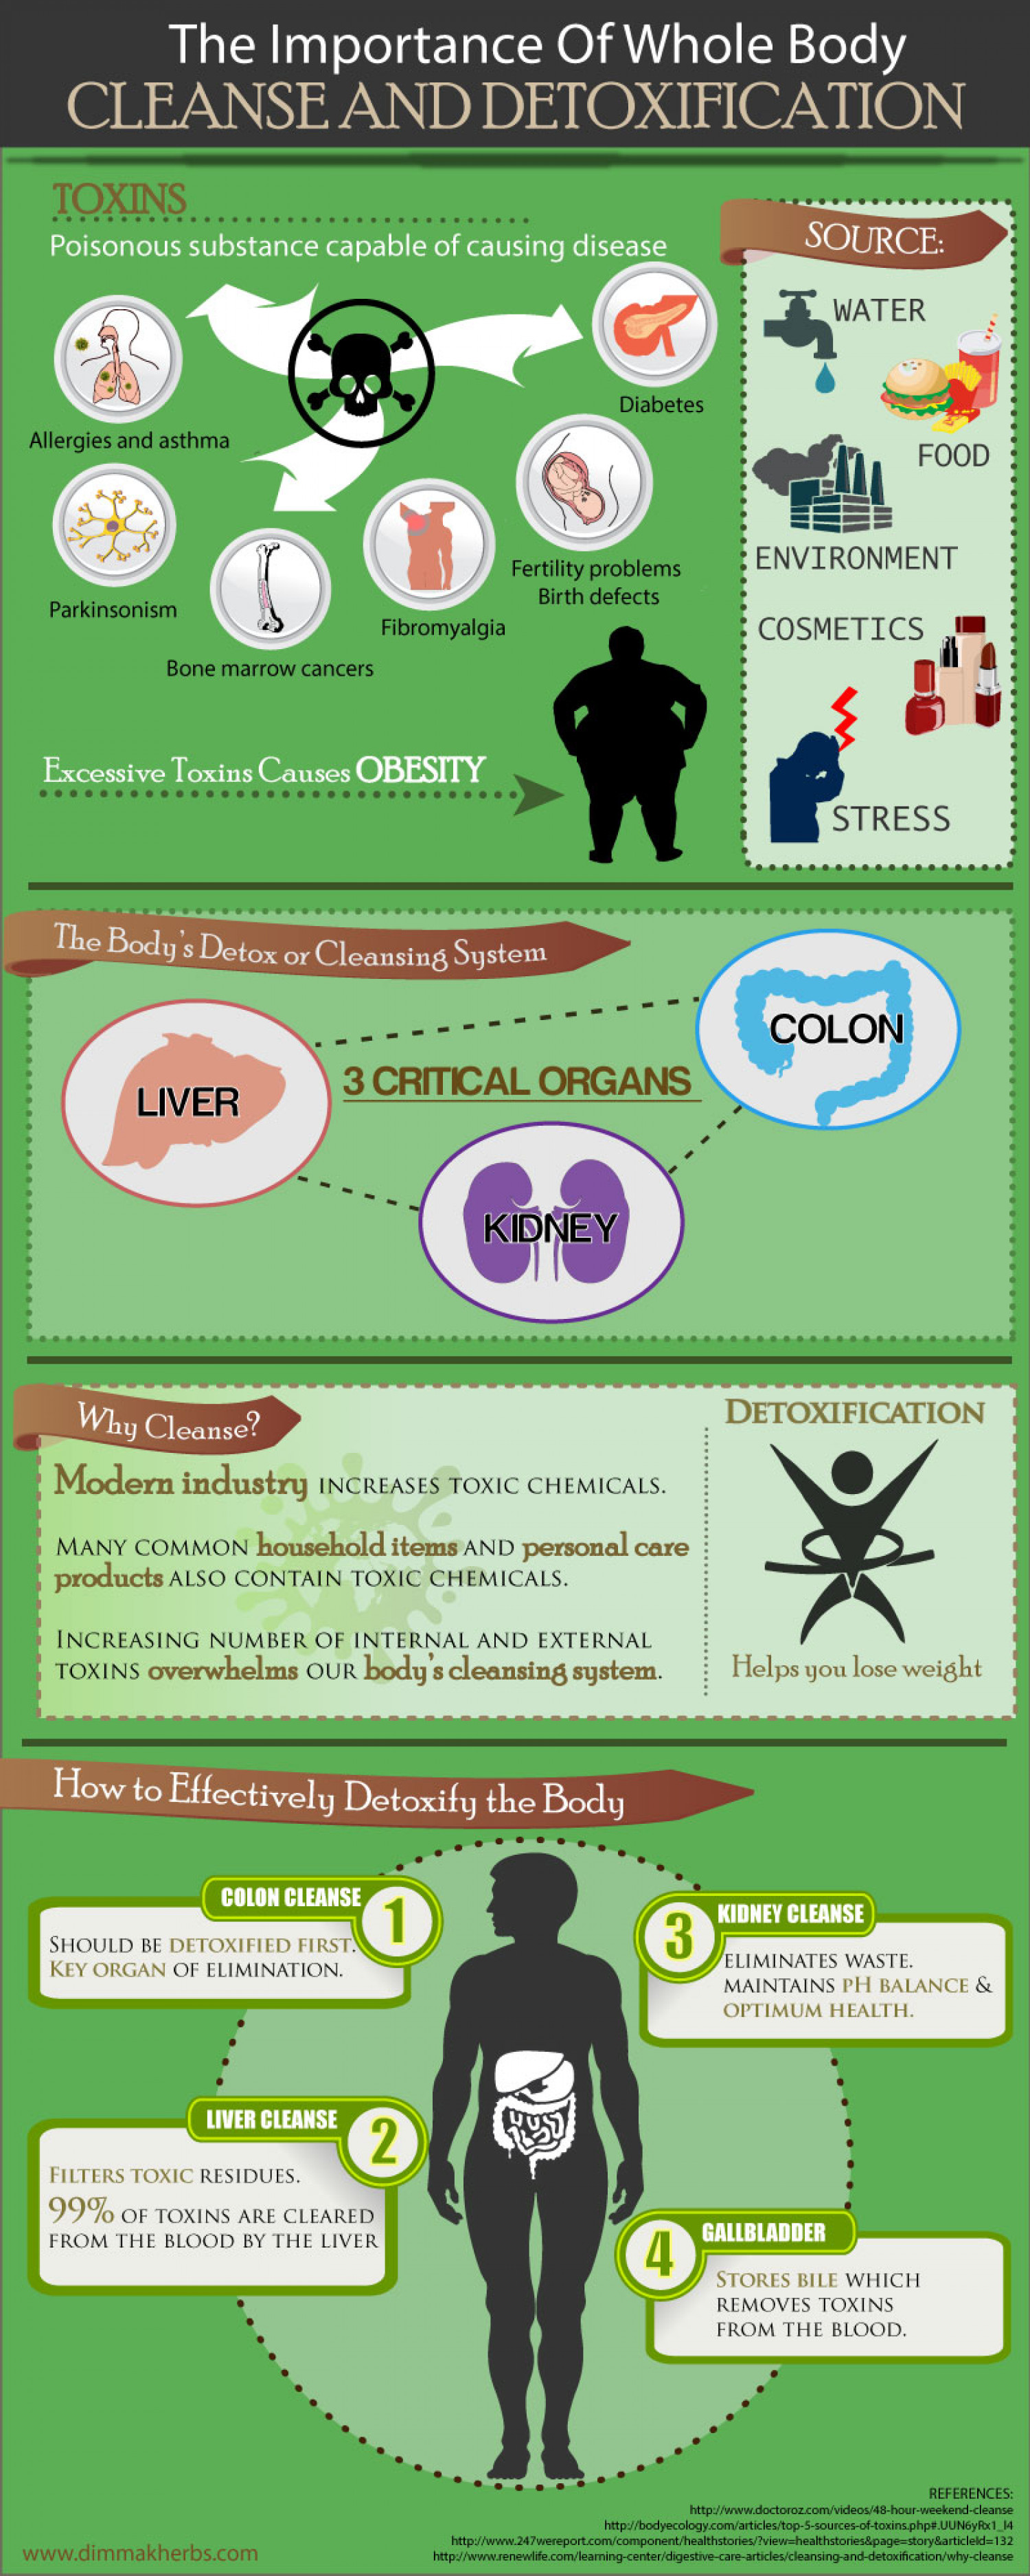 The Importance of Whole Body Cleanse and Detoxification Infographic